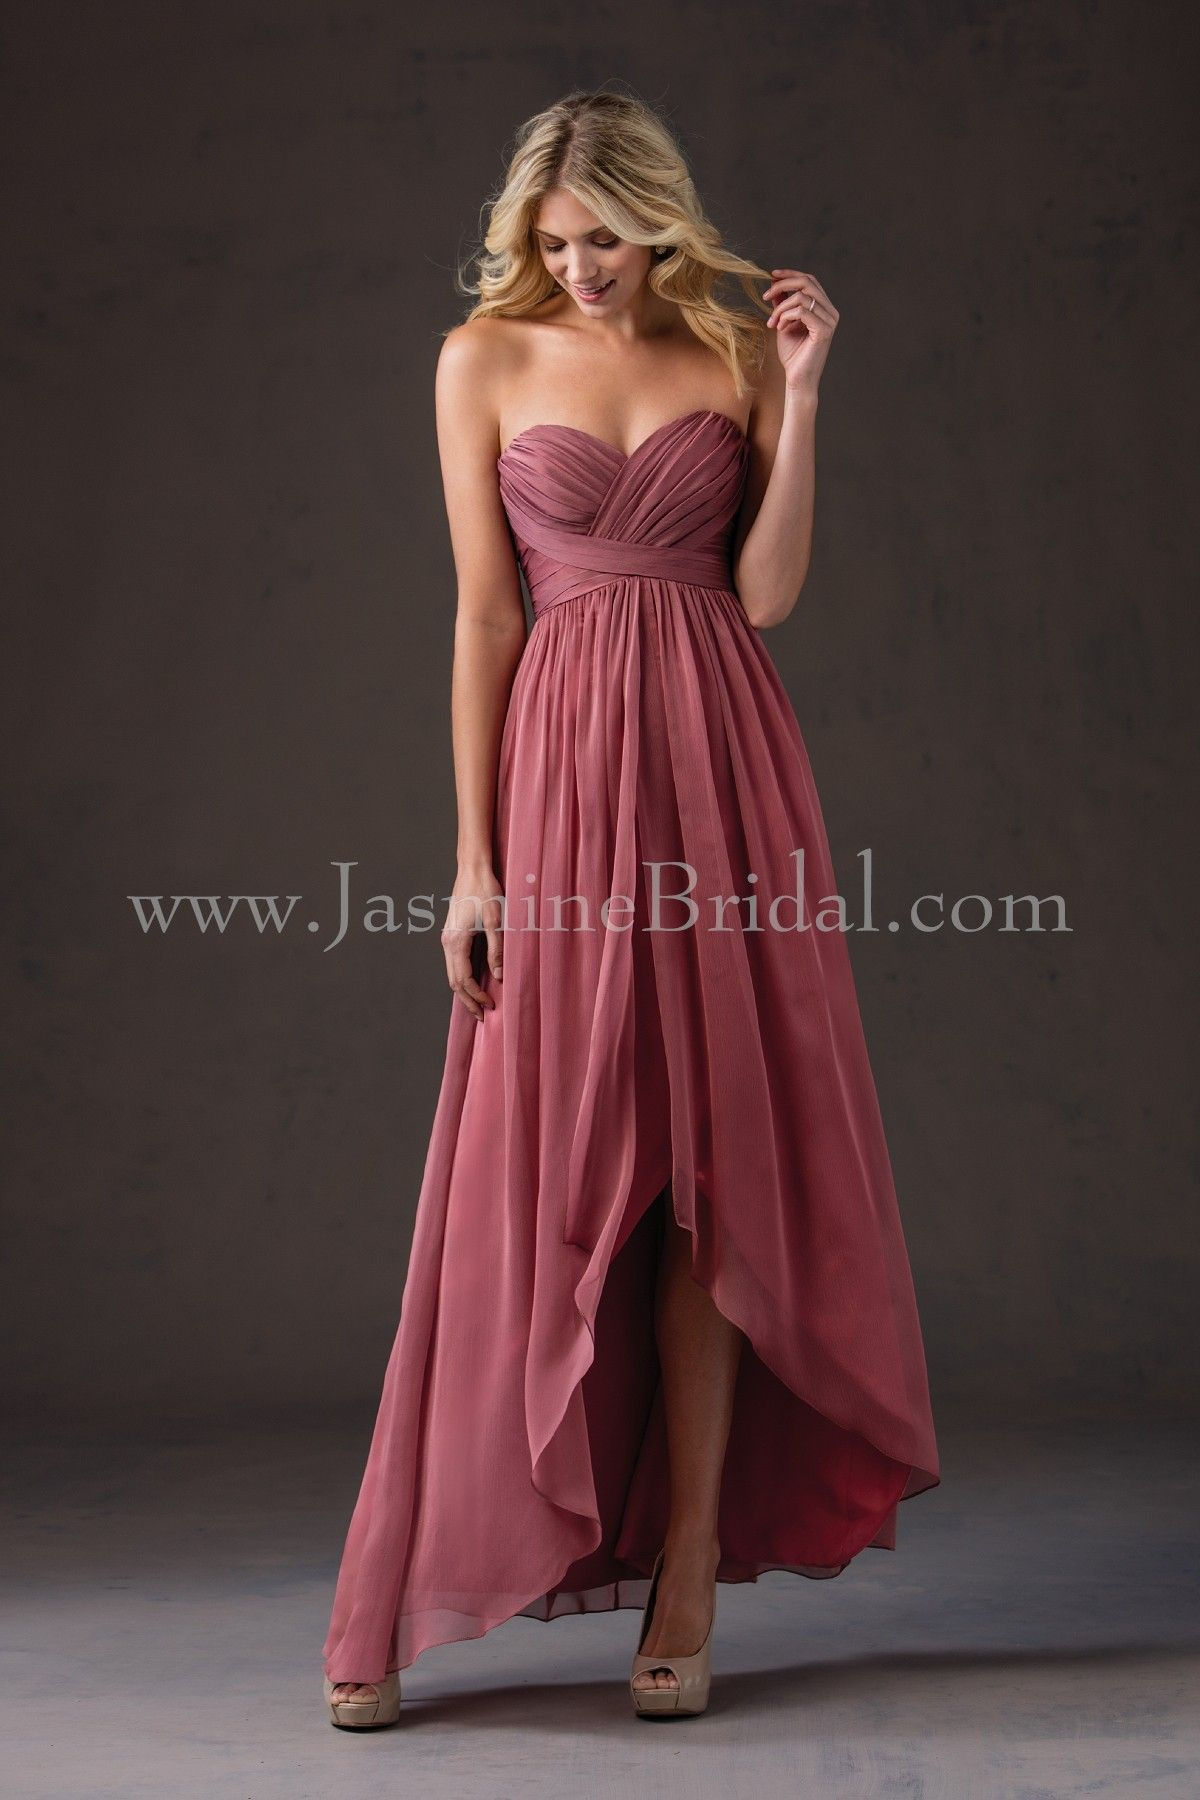 Jasmine Bridal Bridesmaid Dress Belsoie Style L184052 in Geranium ... f9a3d57255a8